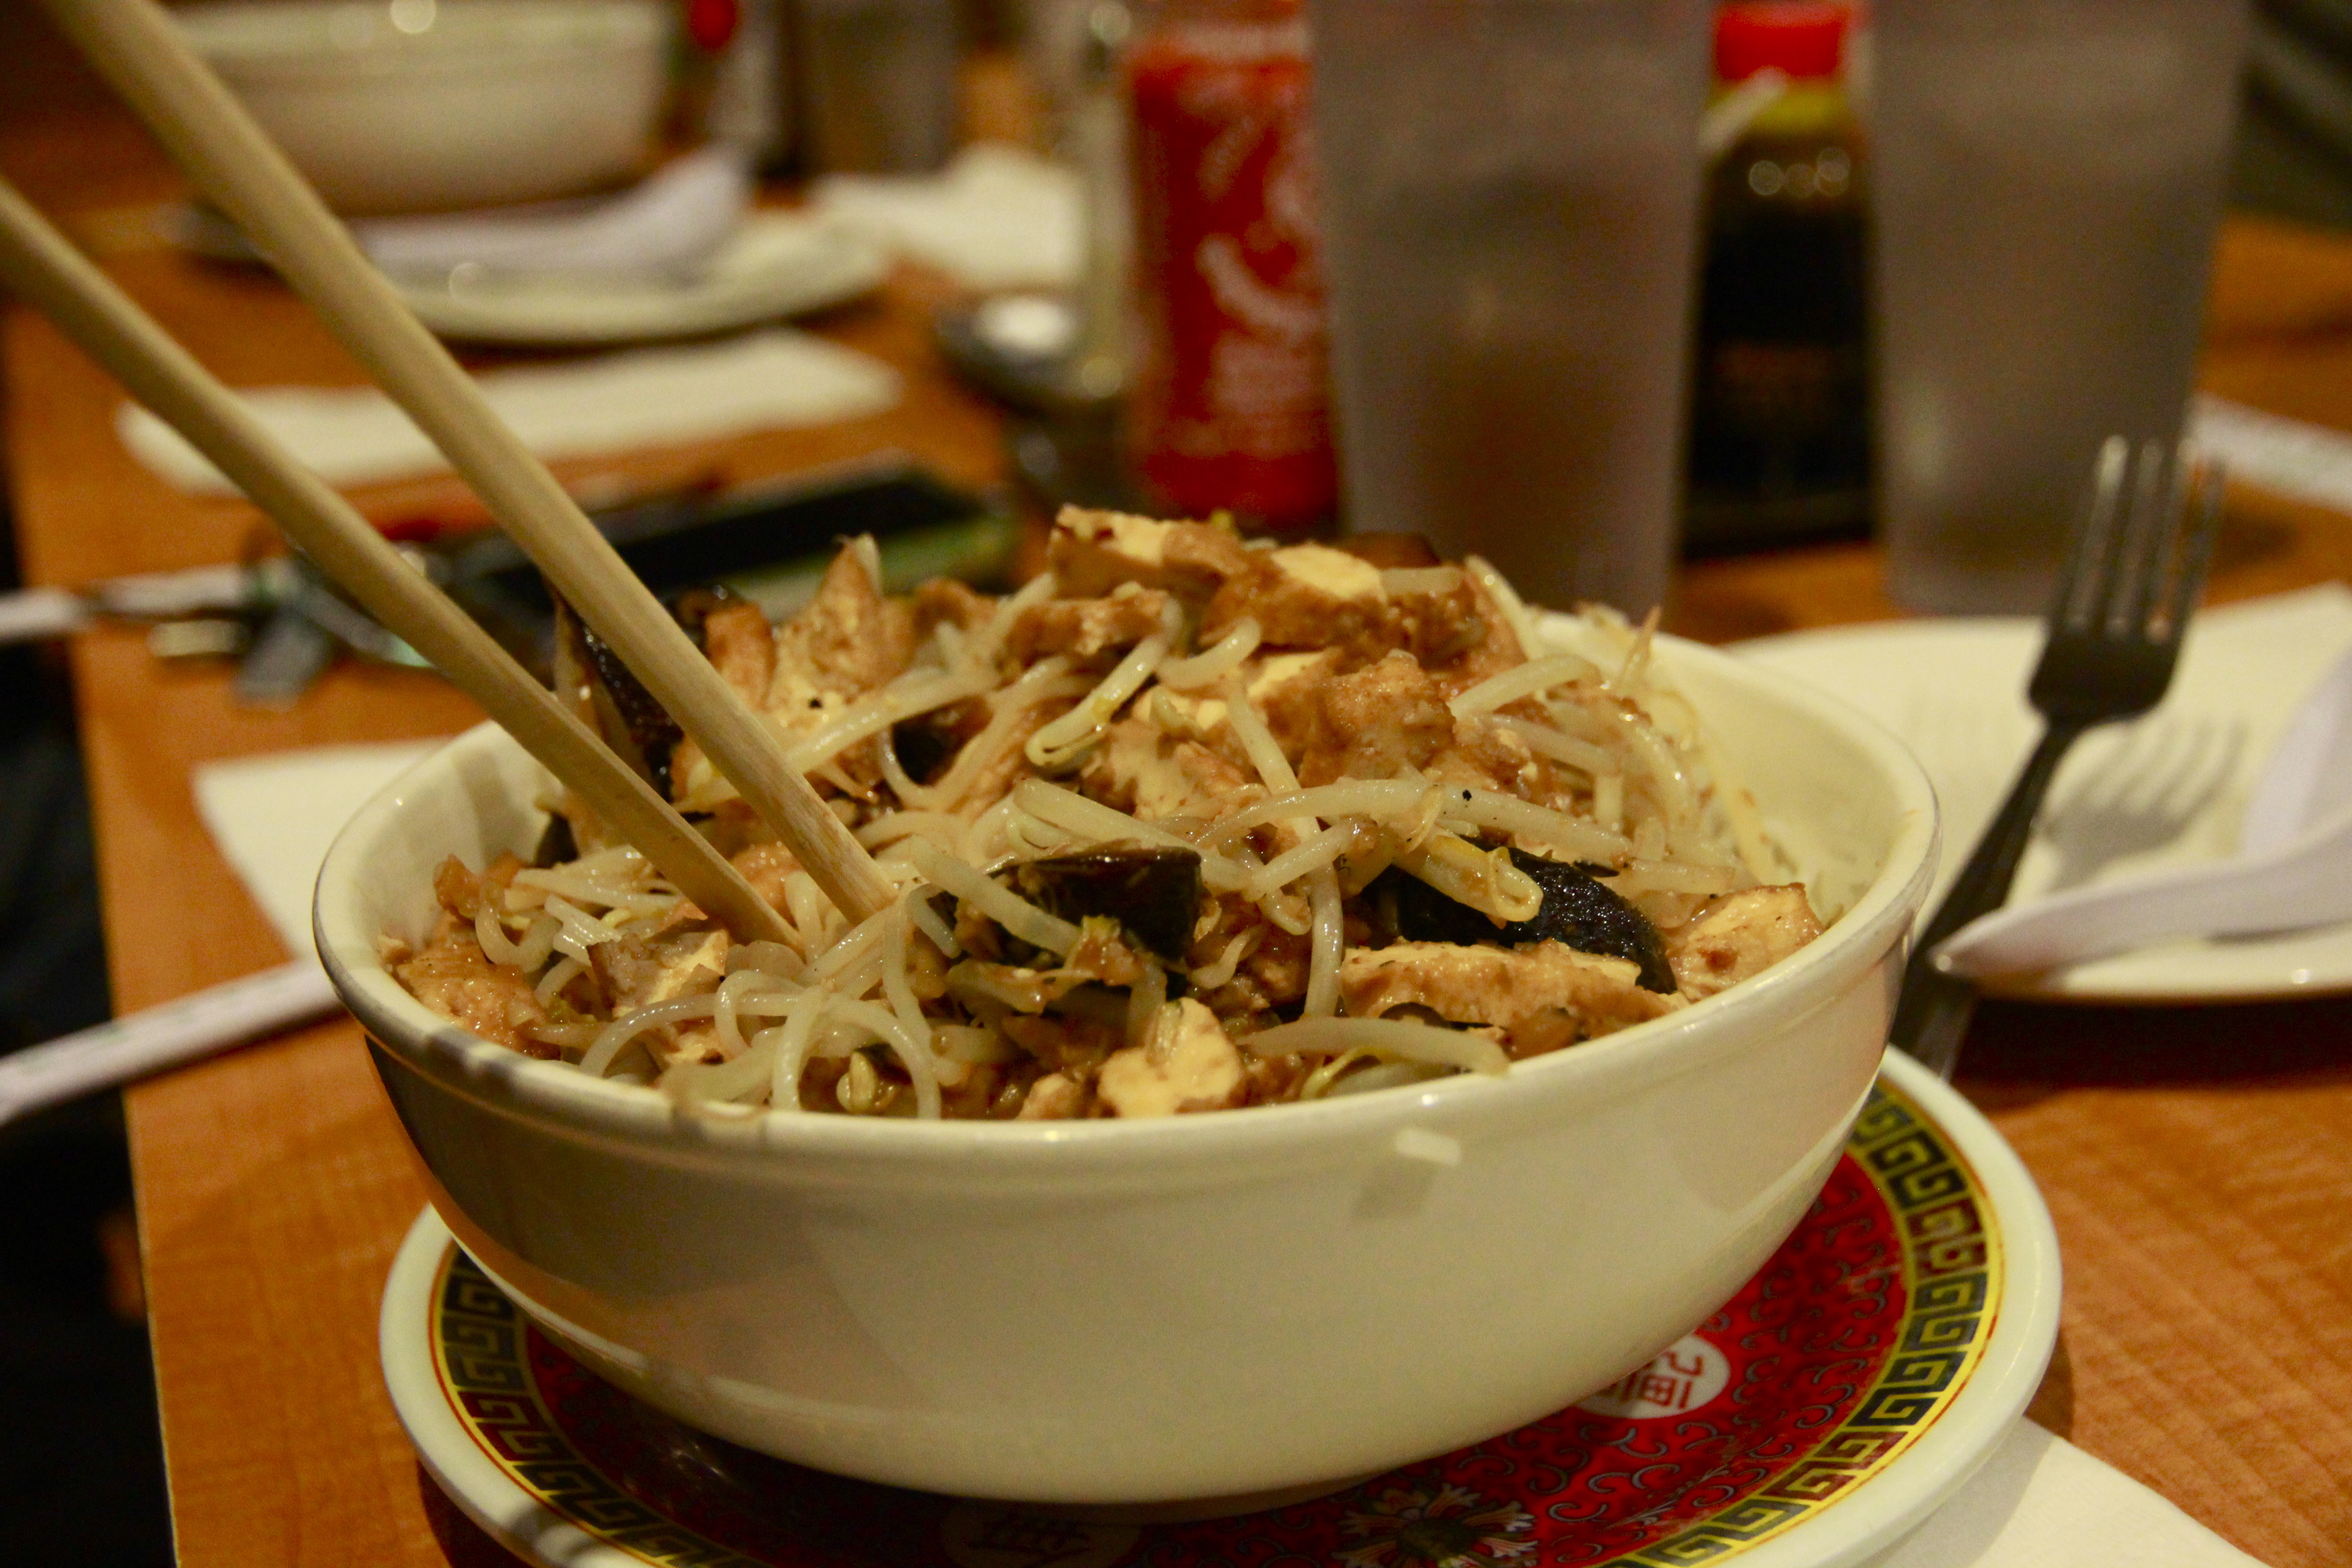 Phuong trang authentic vietnamese cuisine in san diego for Authentic vietnamese cuisine